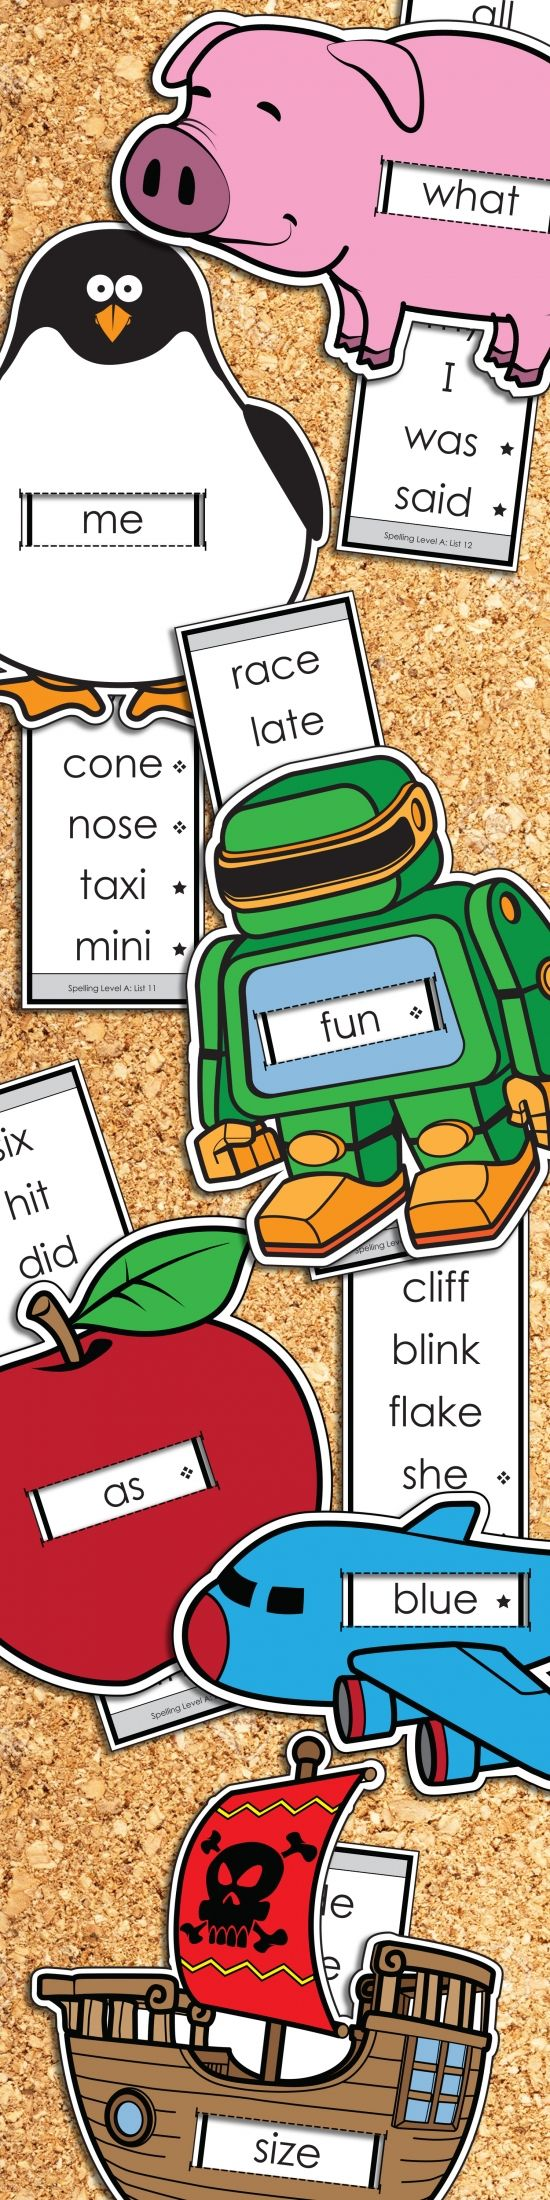 Print Out These Adorable Sight Word Sliders For Your Students To Practice Their Sightwords Slide T Sight Words Sight Word Activities Super Teacher Worksheets